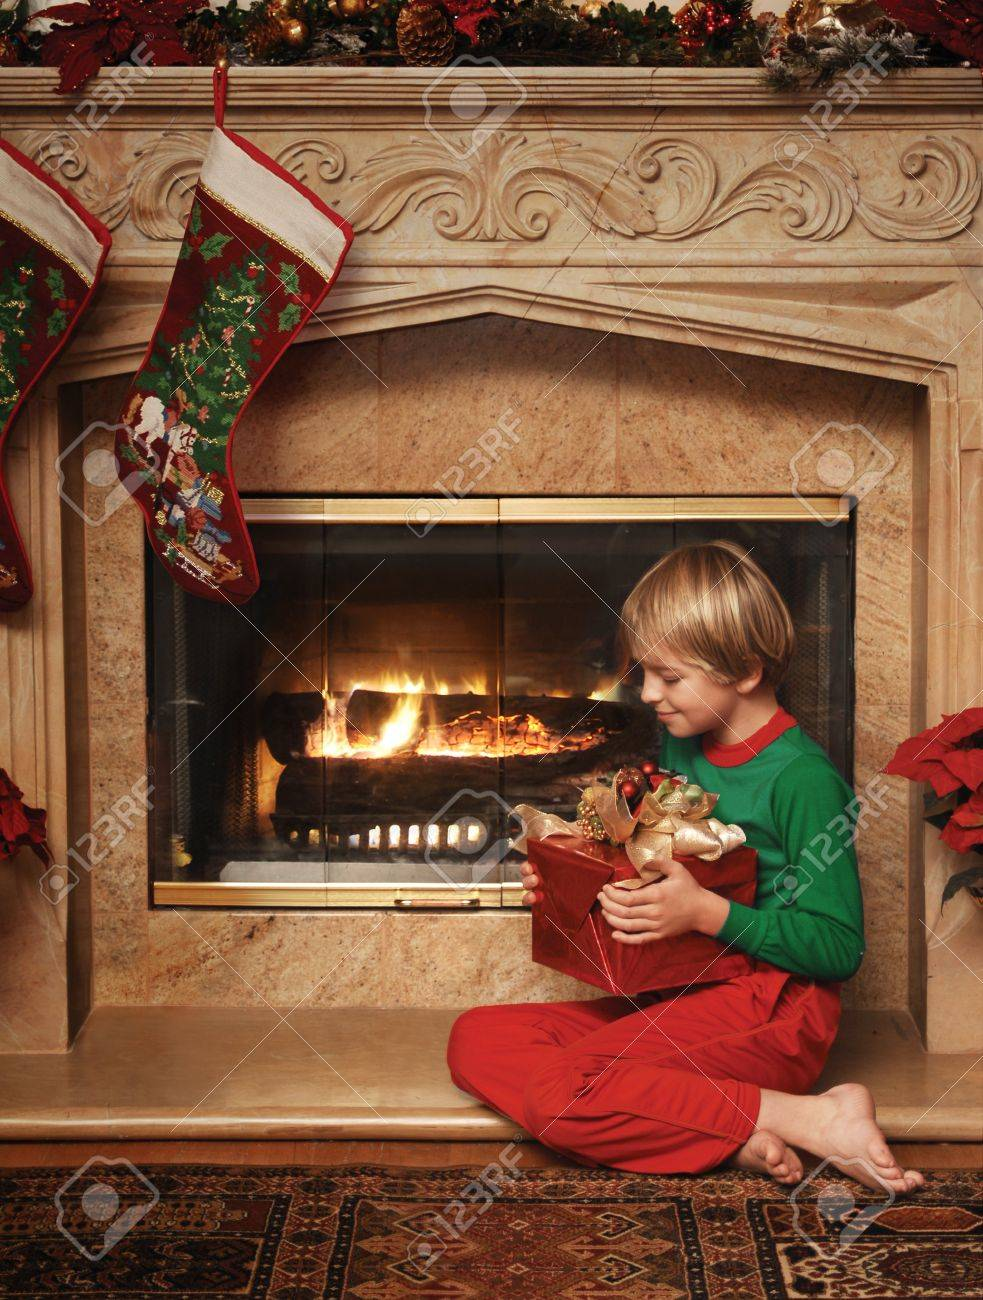 8 Year Old Boy Sitting Beside The Fireplace With A Wrapped Christmas ...